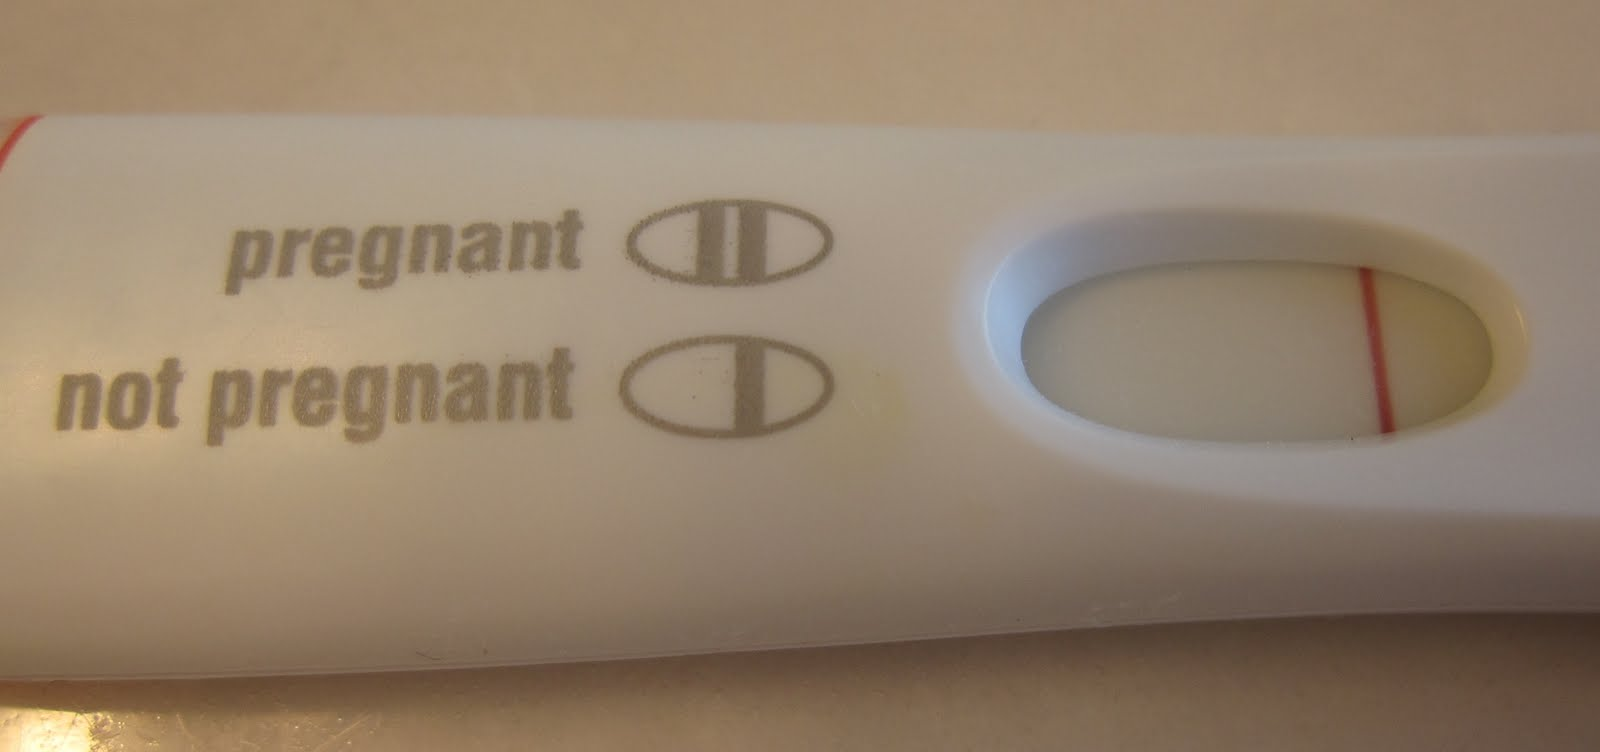 https://gasandair.files.wordpress.com/2013/04/negative-digital-pregnancy-test.jpg